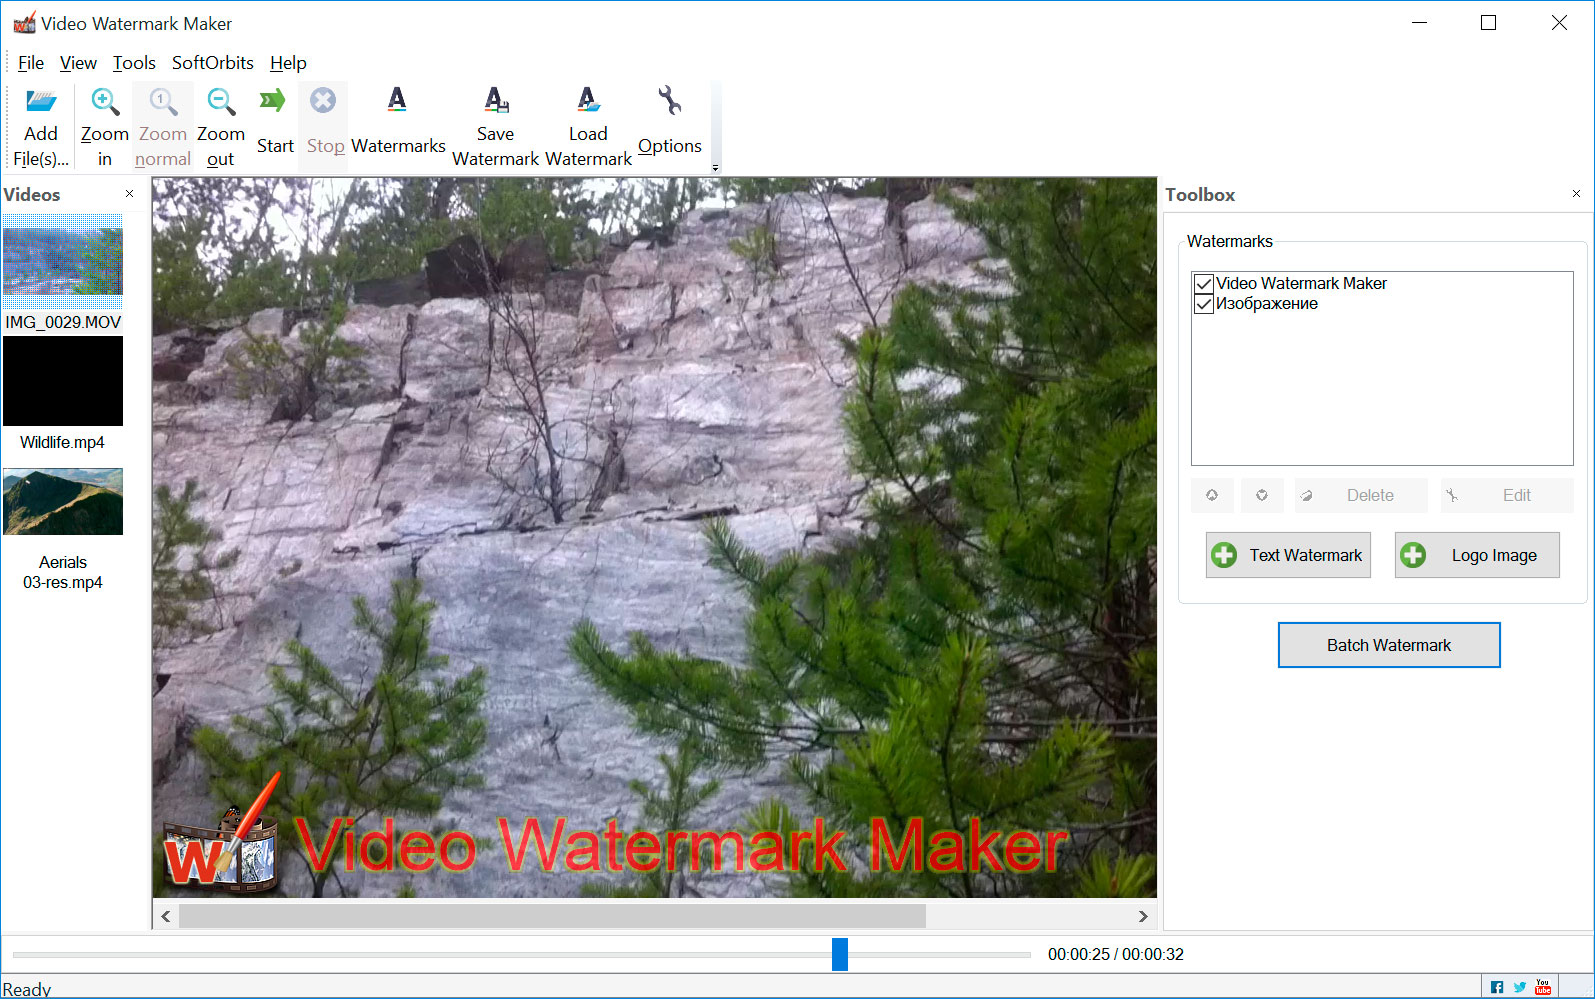 Video Watermark Maker 屏幕截图